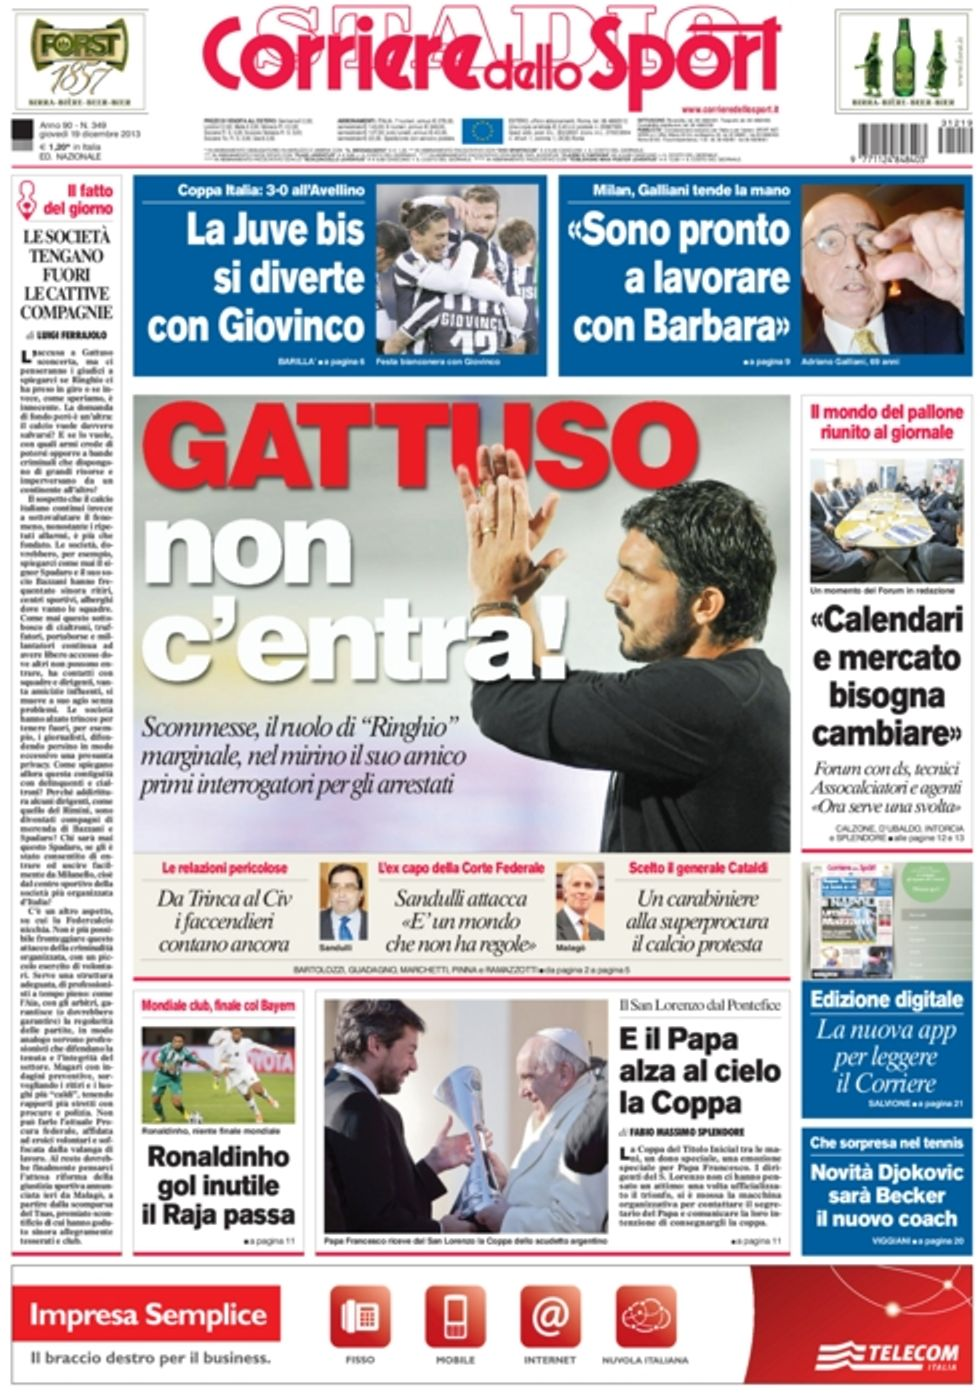 RASSEGNA - The day after